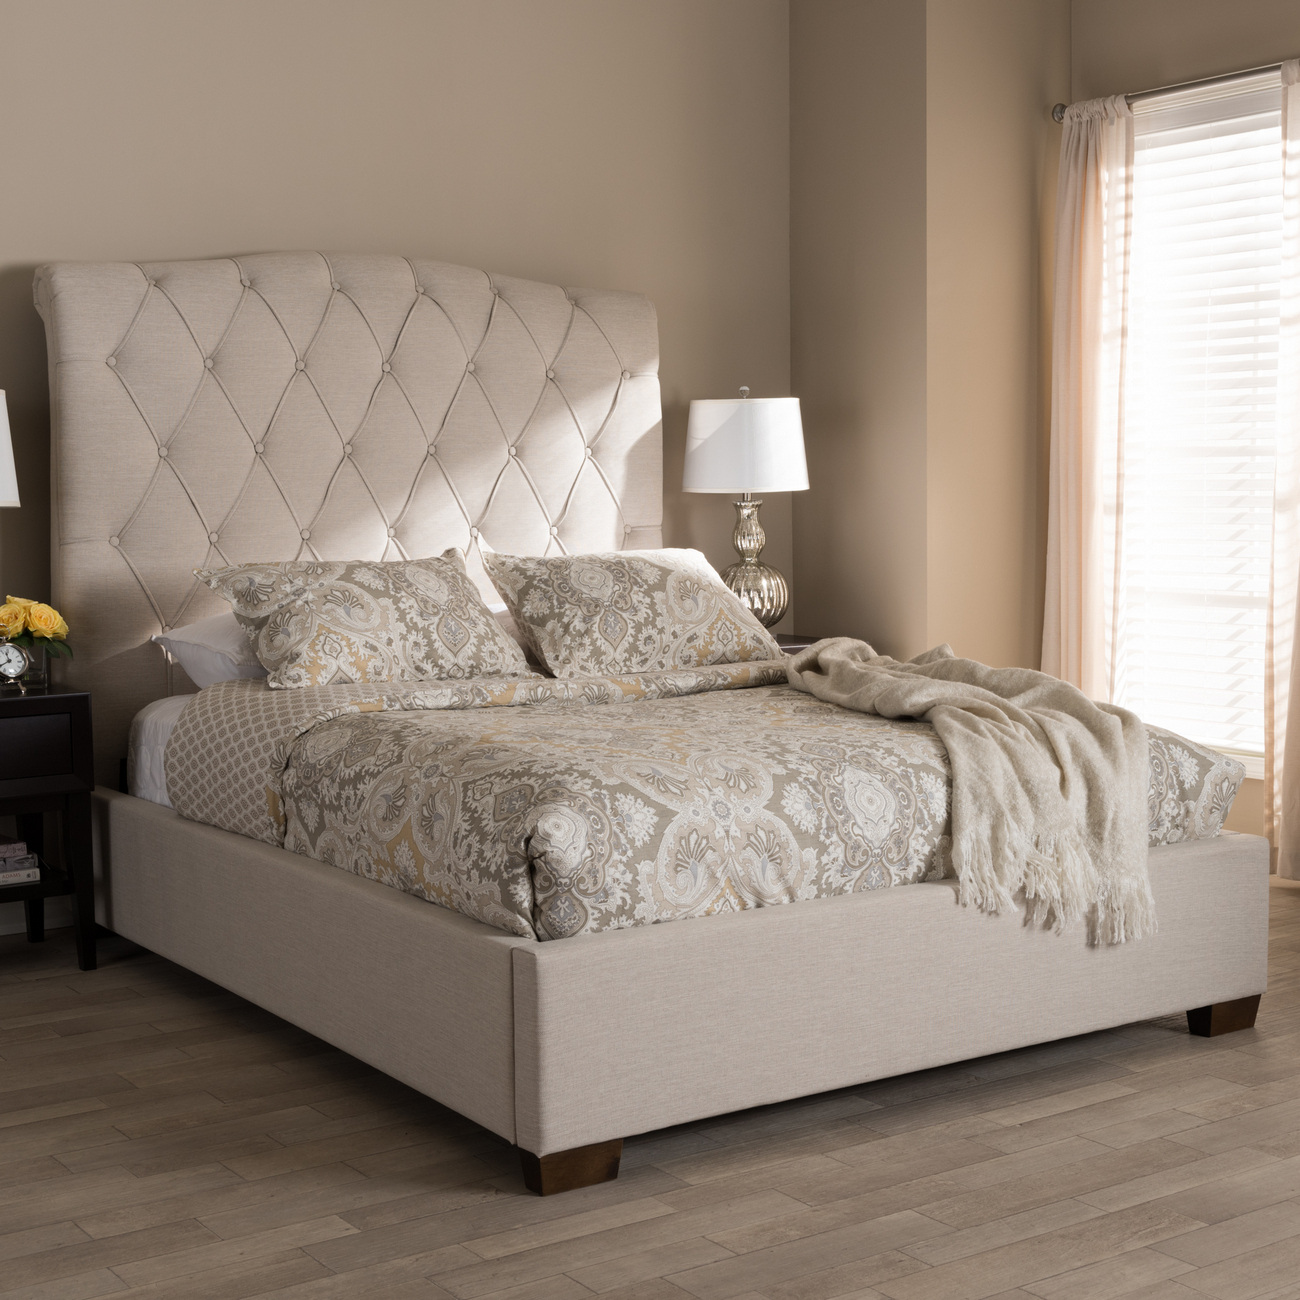 Wholesale Interiors Upholstered Platform Bed King